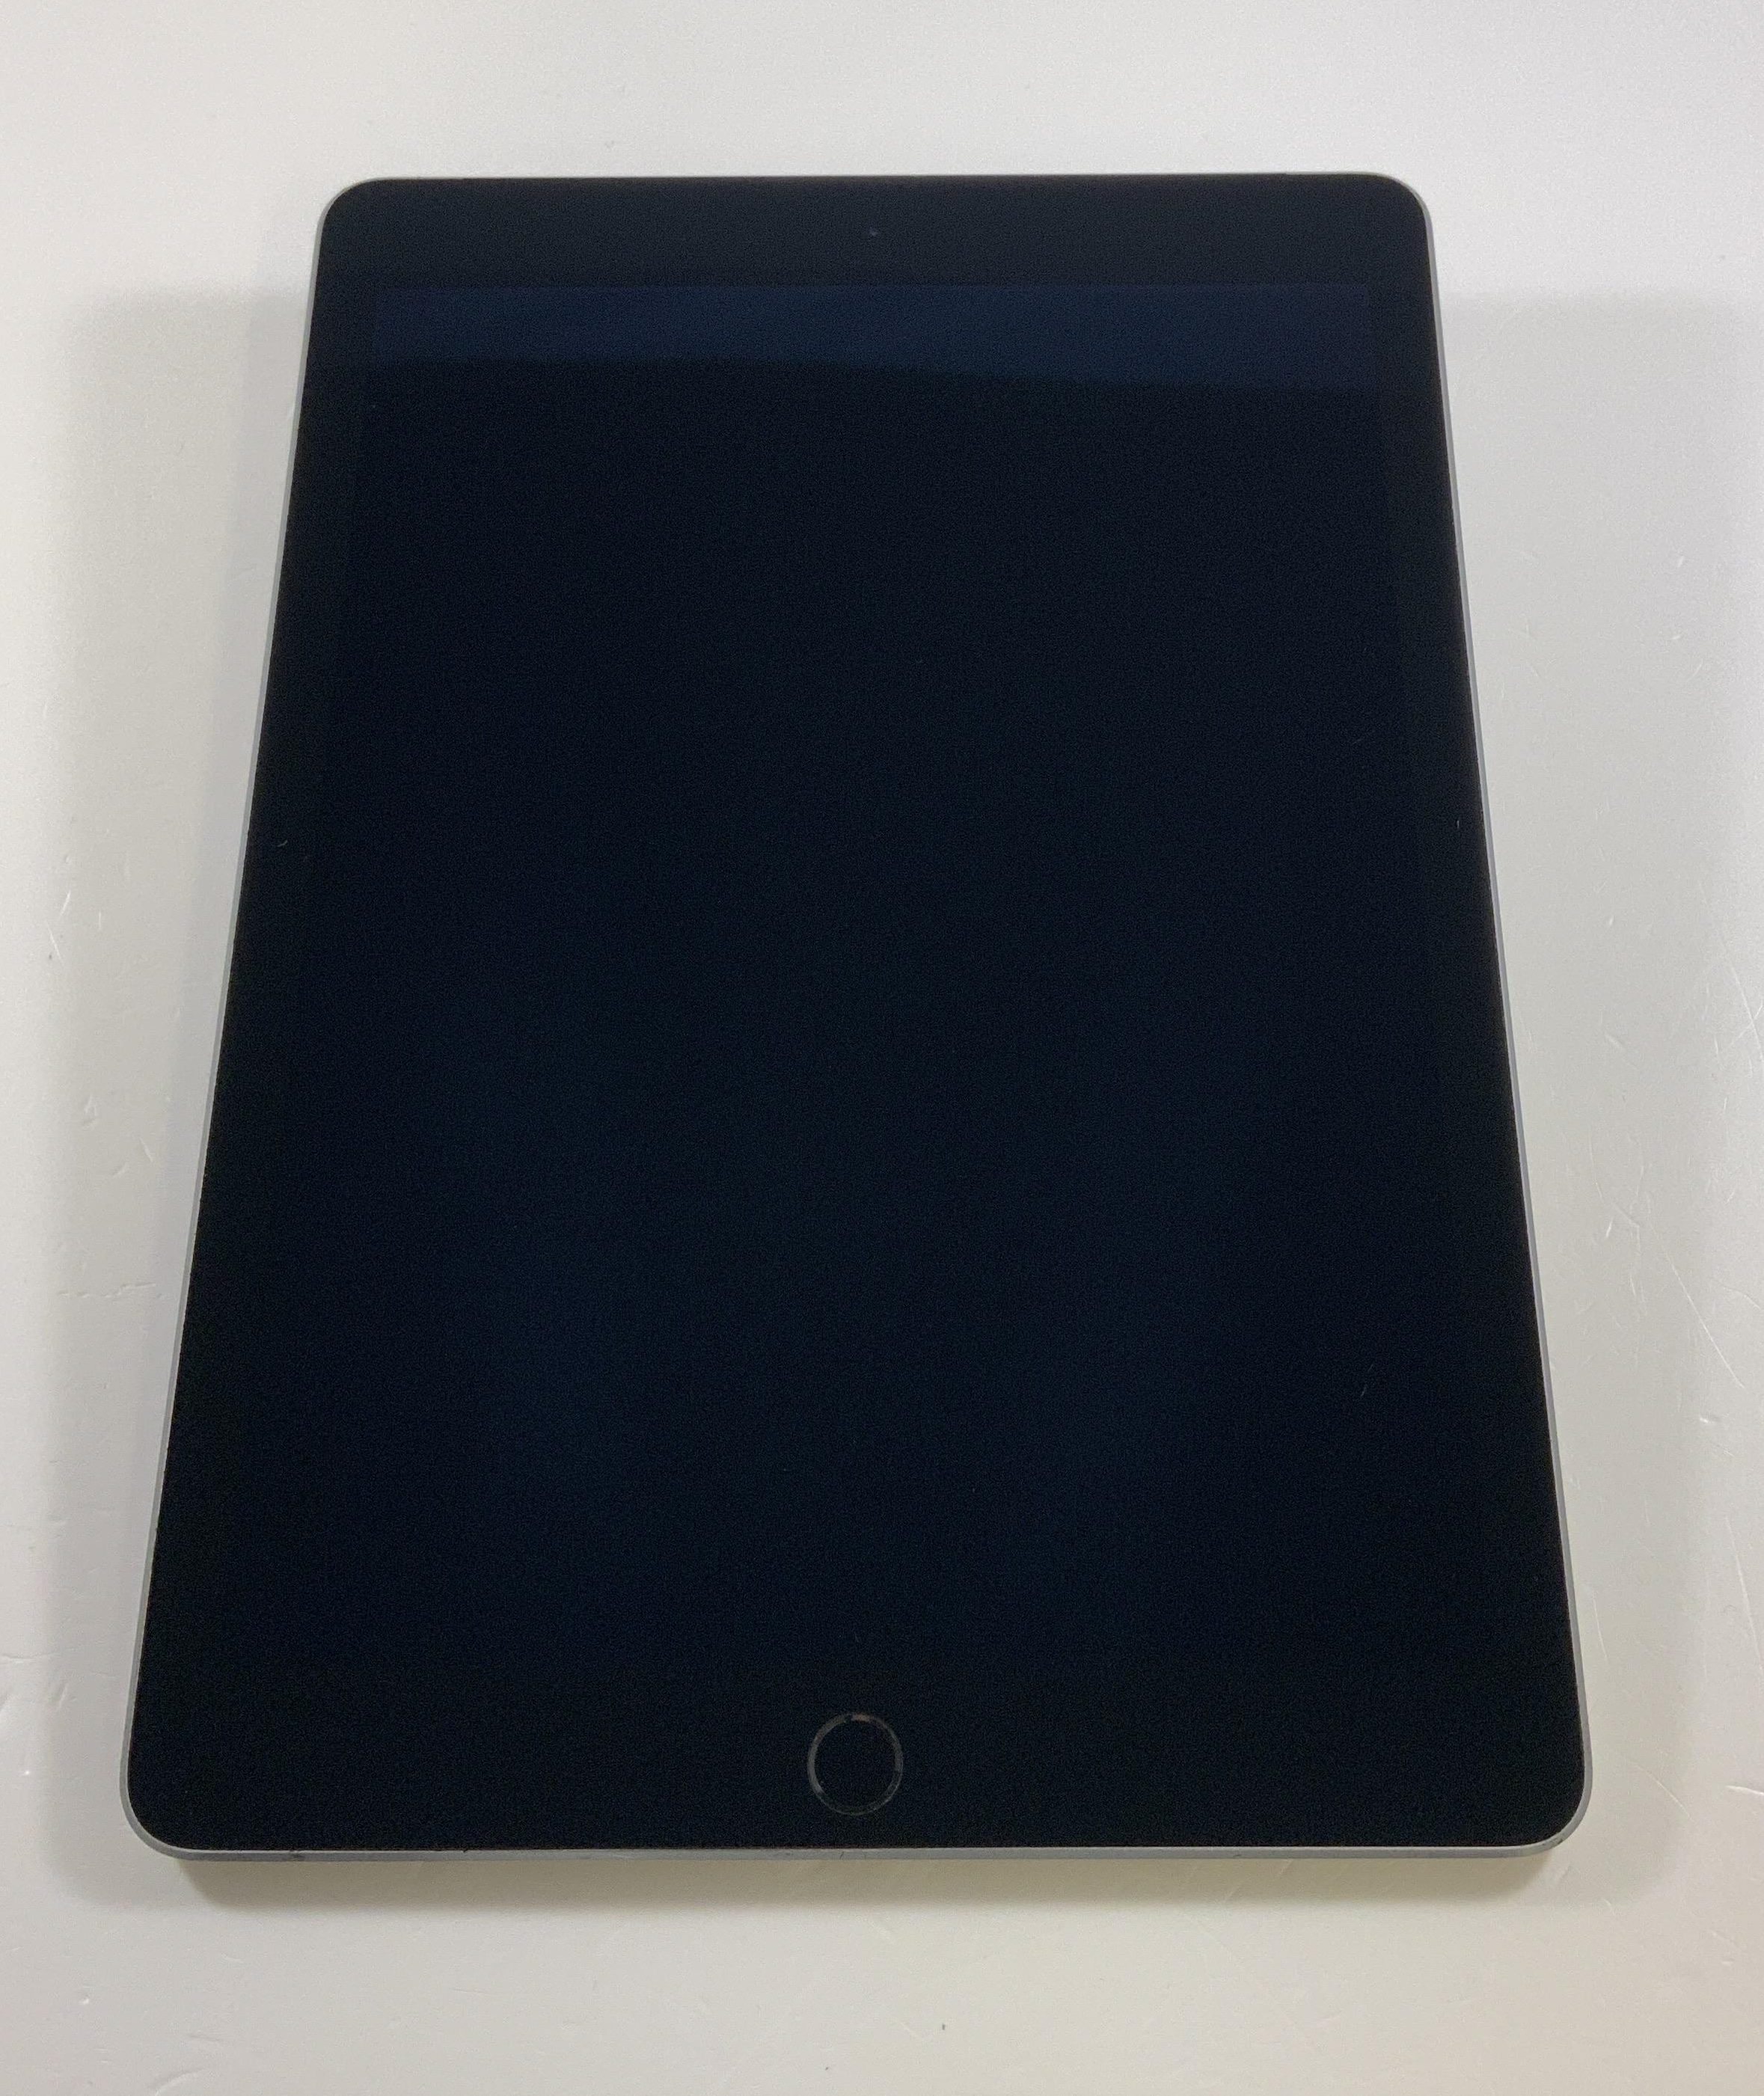 iPad Air 2 Wi-Fi + Cellular 64GB, 64GB, Space Gray, image 1